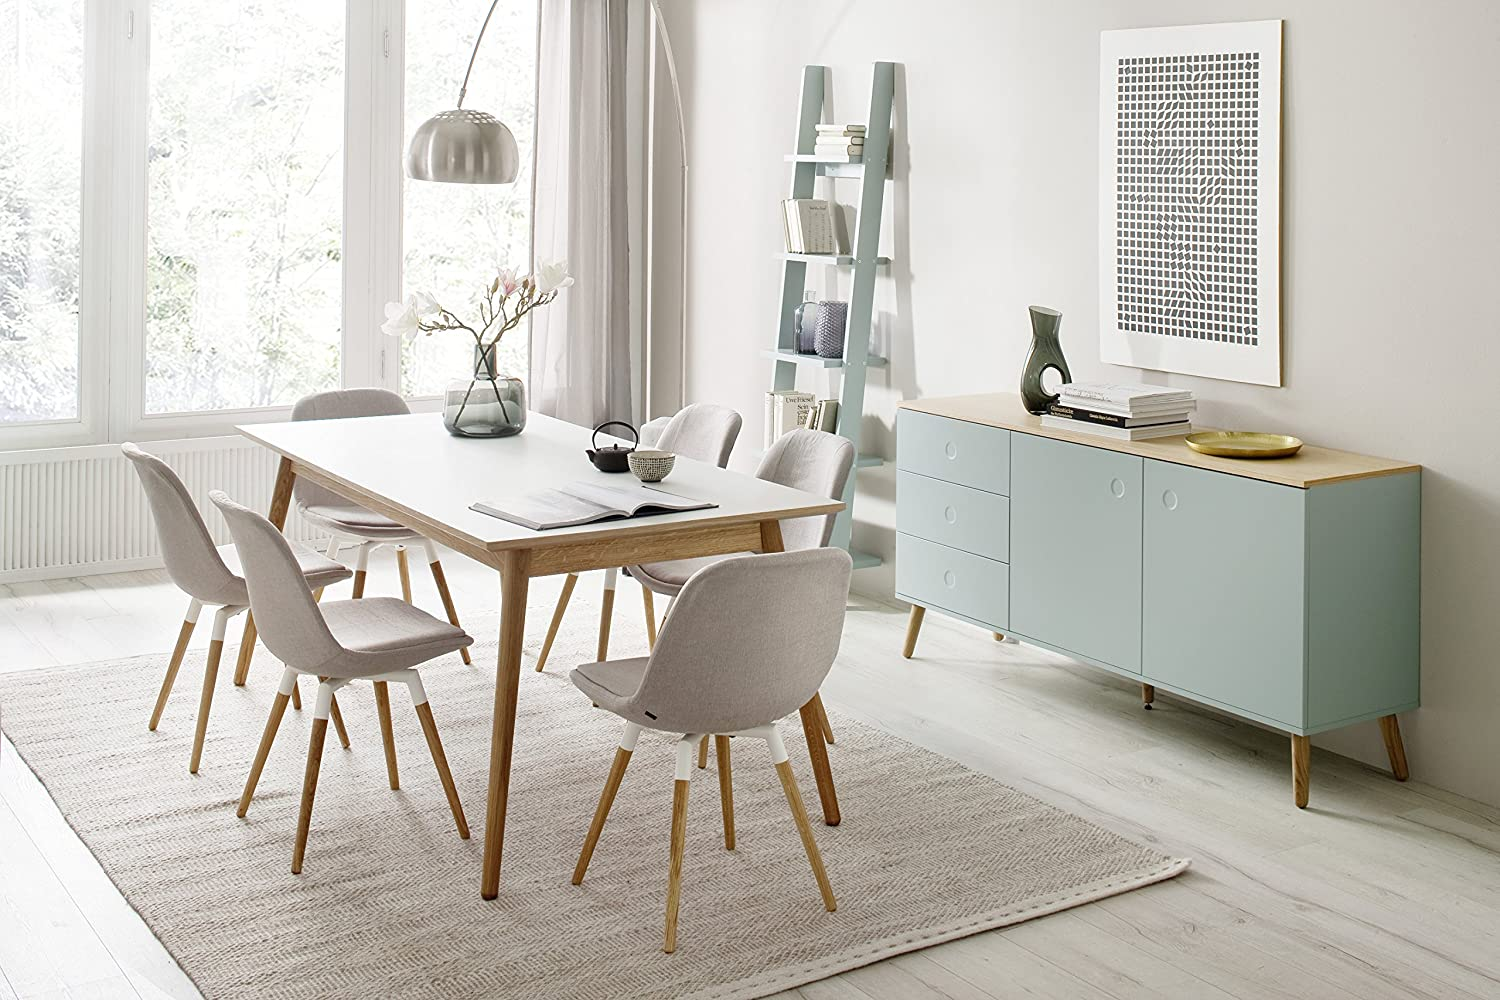 Price cut limited time offer shop now for the best selection hurry - Tenzo Dot Designer Dining Table Mdf And Solid Oak White Oak Amazon Co Uk Kitchen Home